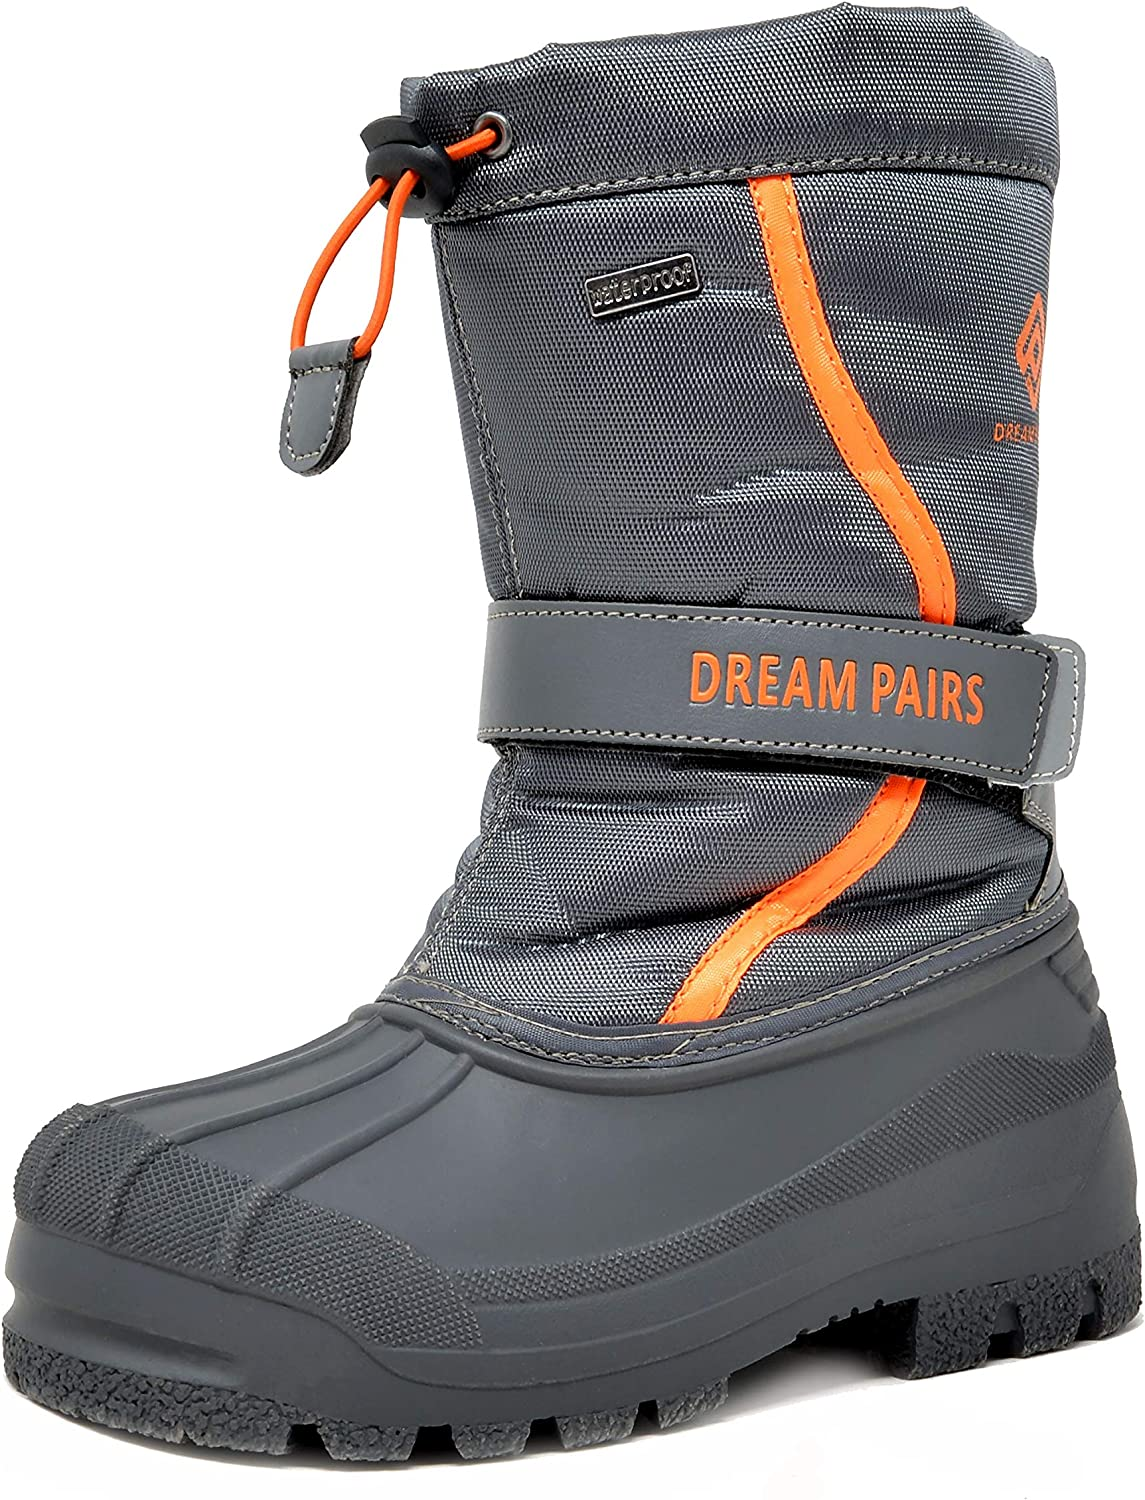 DREAM Weekly update PAIRS Boys Girls Mid Calf Waterproof Snow Boots Winter Factory outlet